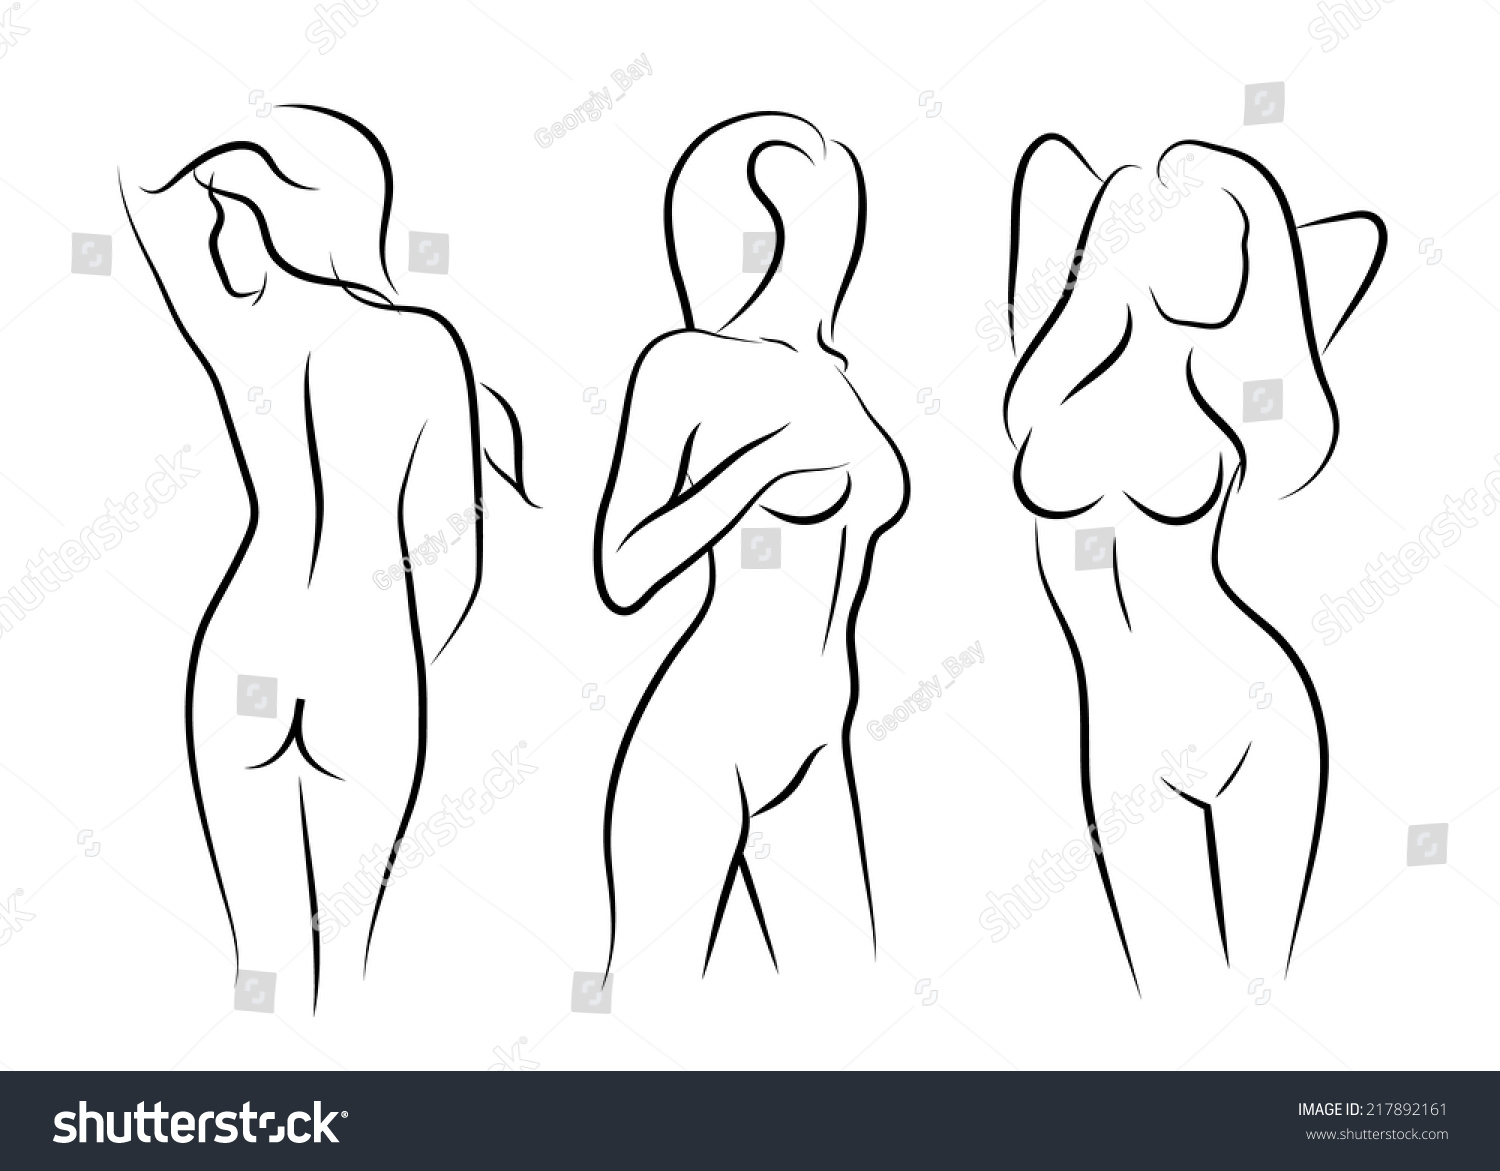 drawings of naked women